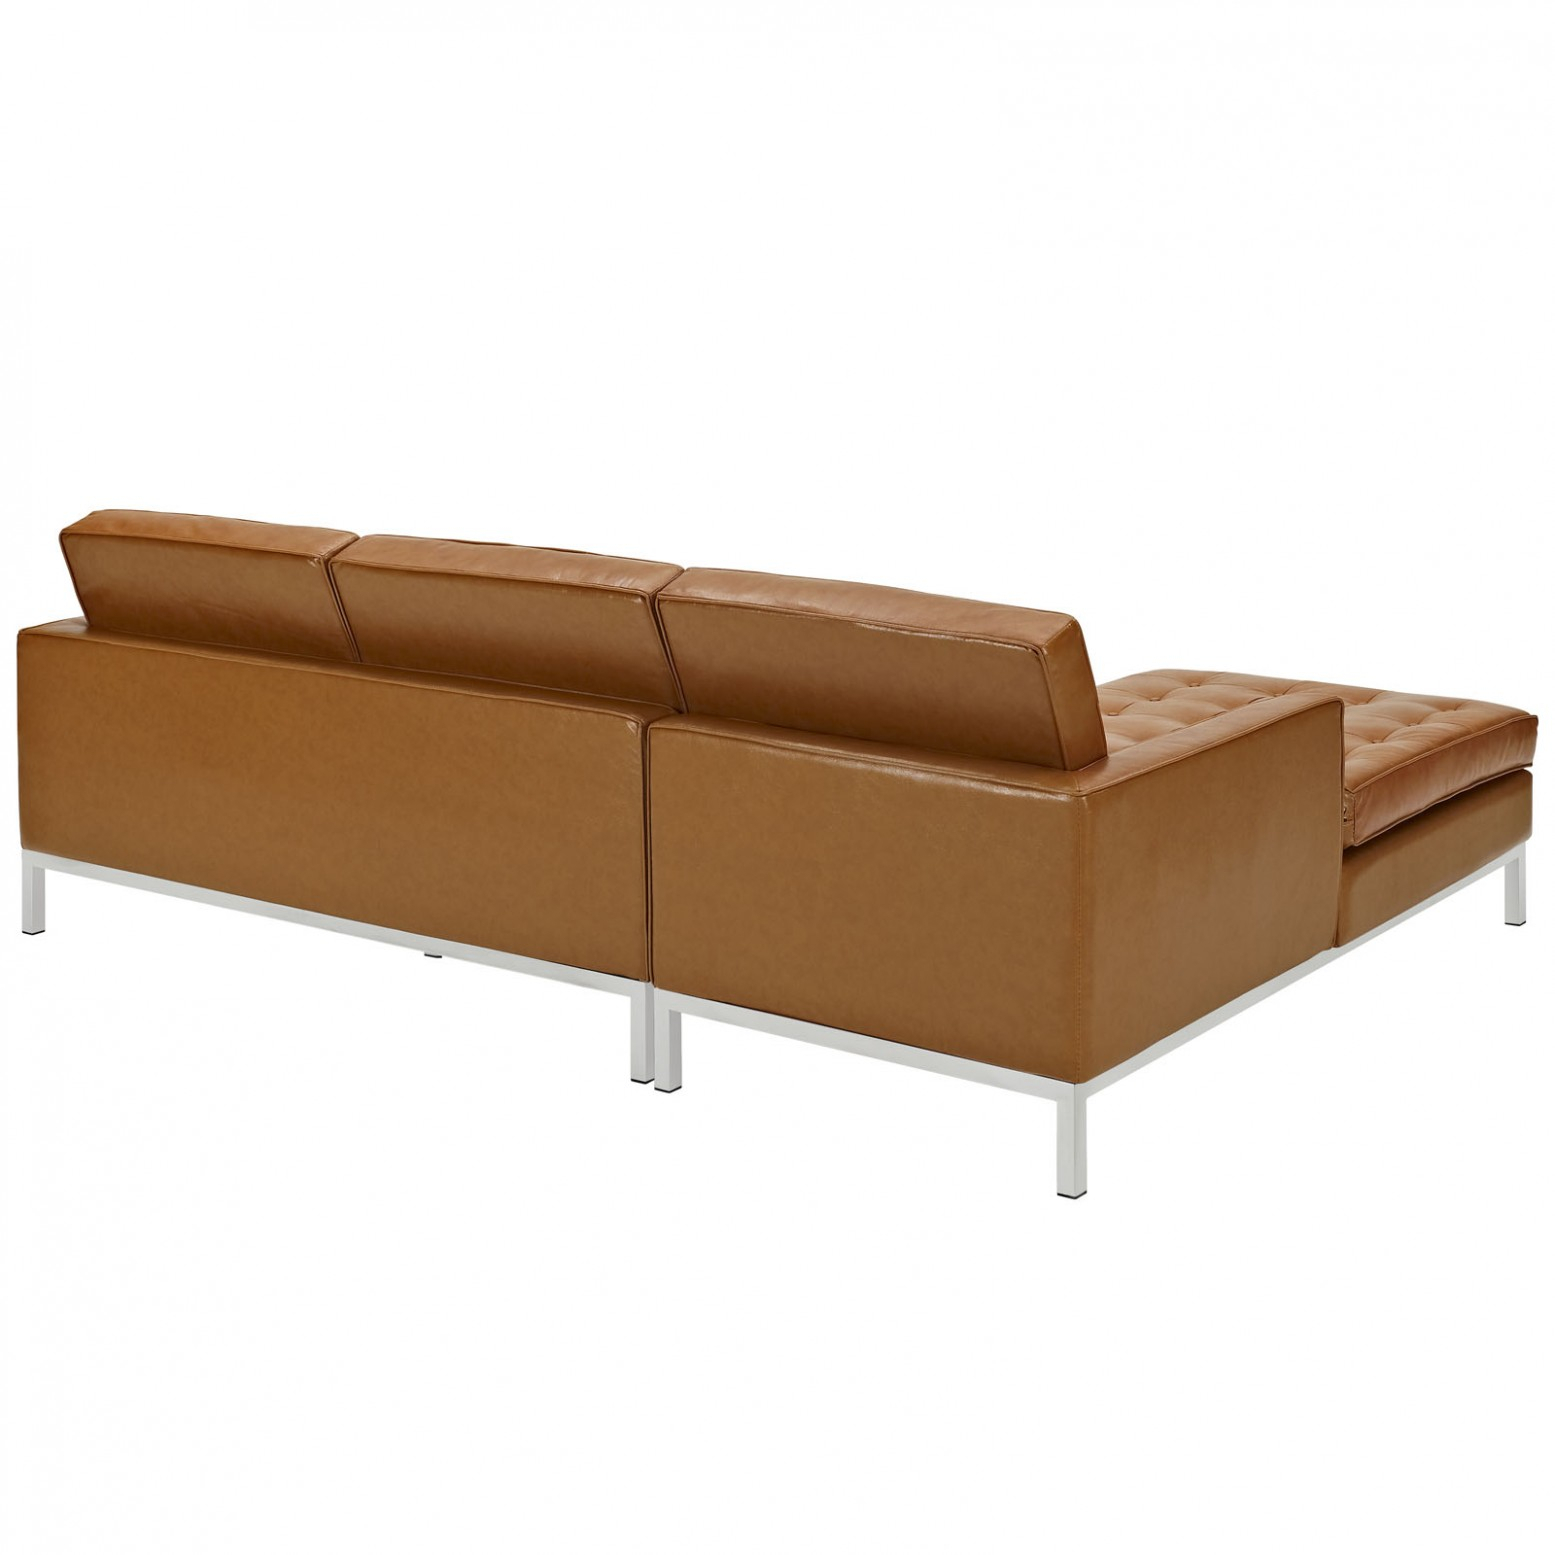 Loft Left Arm Leather Sectional Sofa, Tanmodway Furniture Pertaining To Loft Arm Sofa Chairs (Image 14 of 25)